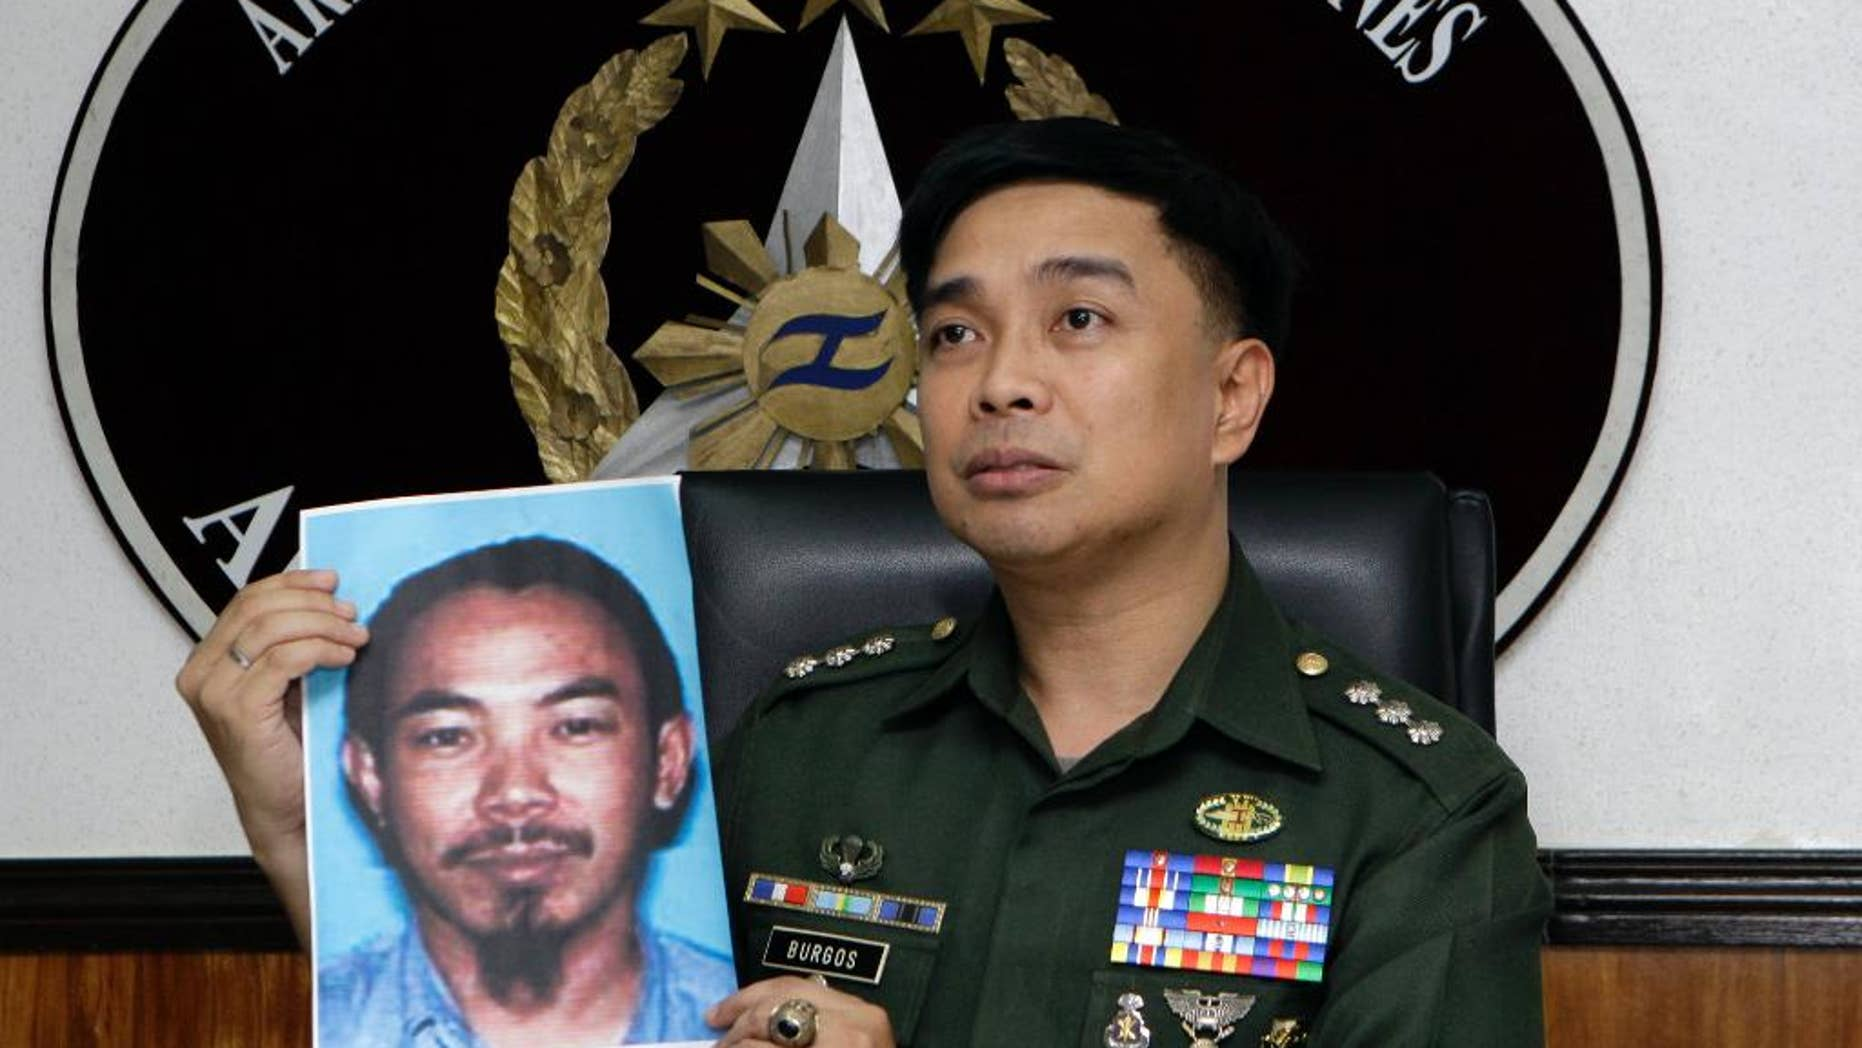 FILE - In this Feb. 2, 2012 file photo, then Armed Forces of the Philippines spokesman Col. Marcelo Burgos shows a picture of Malaysian Zulkifli bin Hir, also known as Marwan, during a press conference in suburban Quezon City, north of Manila, Philippines. Southeast Asia's top terrorist suspect hasevaded capture and survived several military assaults in the southern Philippines, where police now await DNA results to confirm if he is theman killed in the Jan. 25, 2015 raid that also left 44 police commandos dead.  (AP Photo/Pat Roque, File)